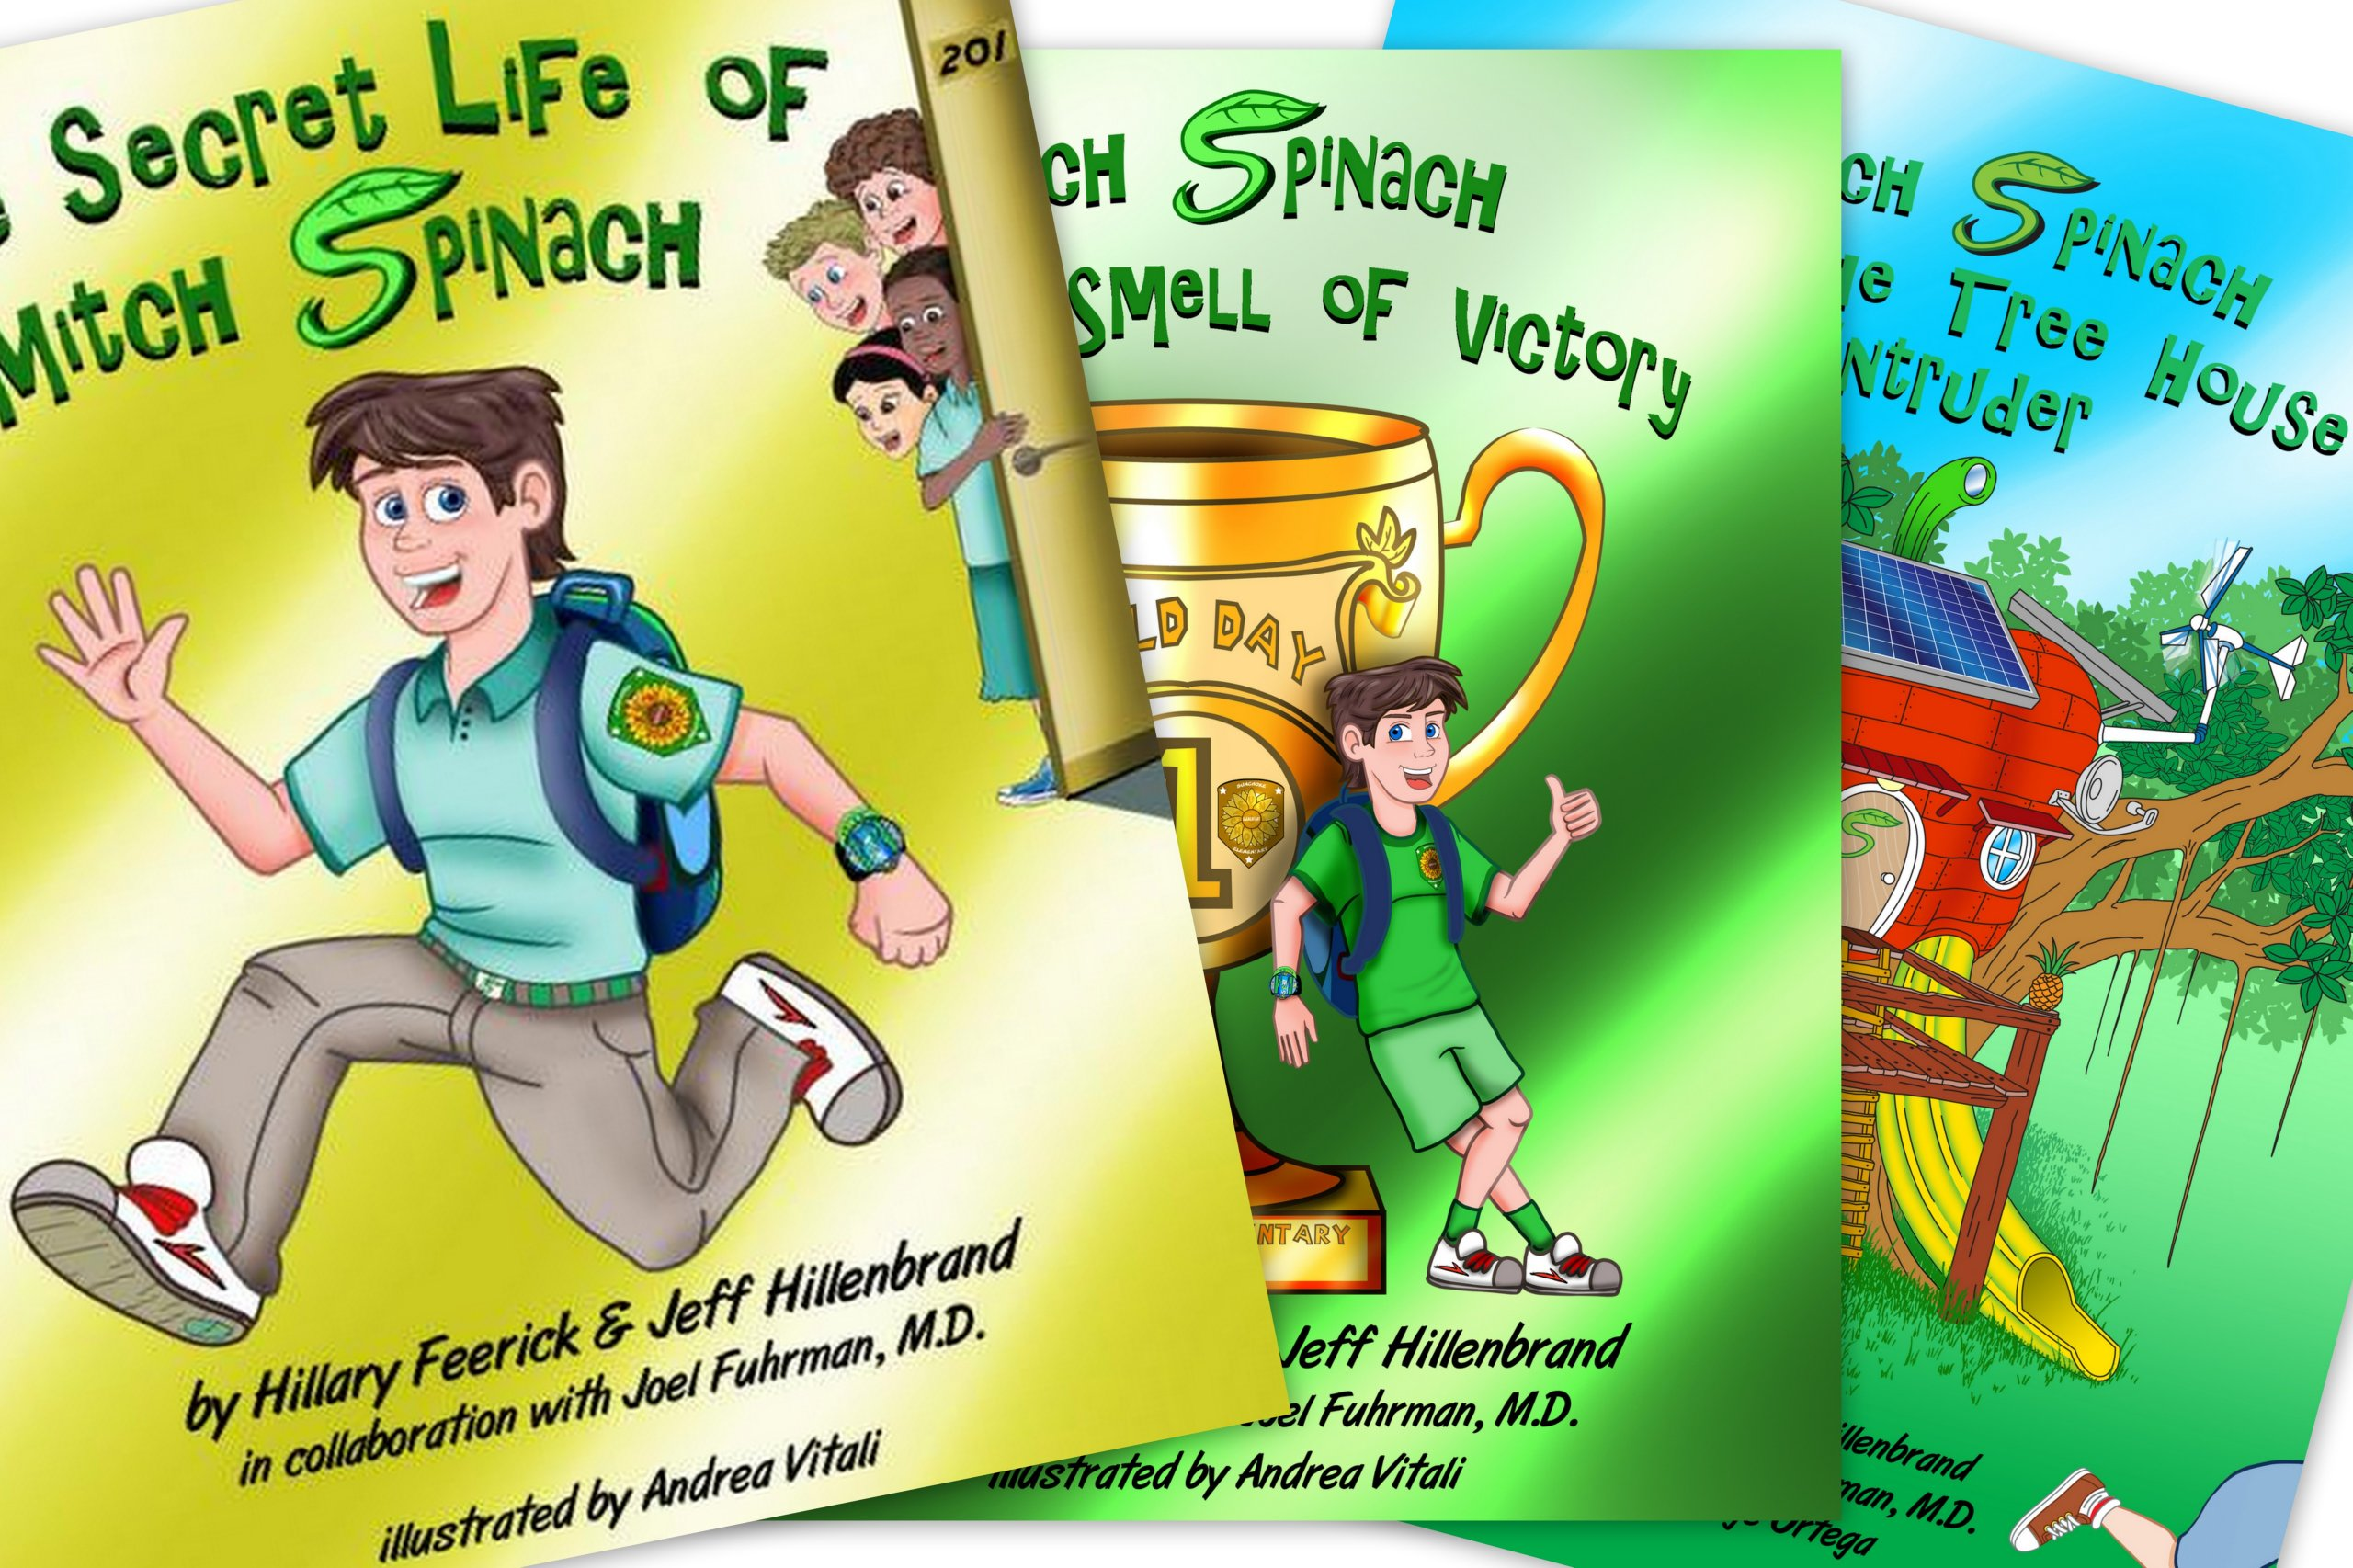 Download Mitch Spinach Children's Book 3 Book Package (Special Price) pdf